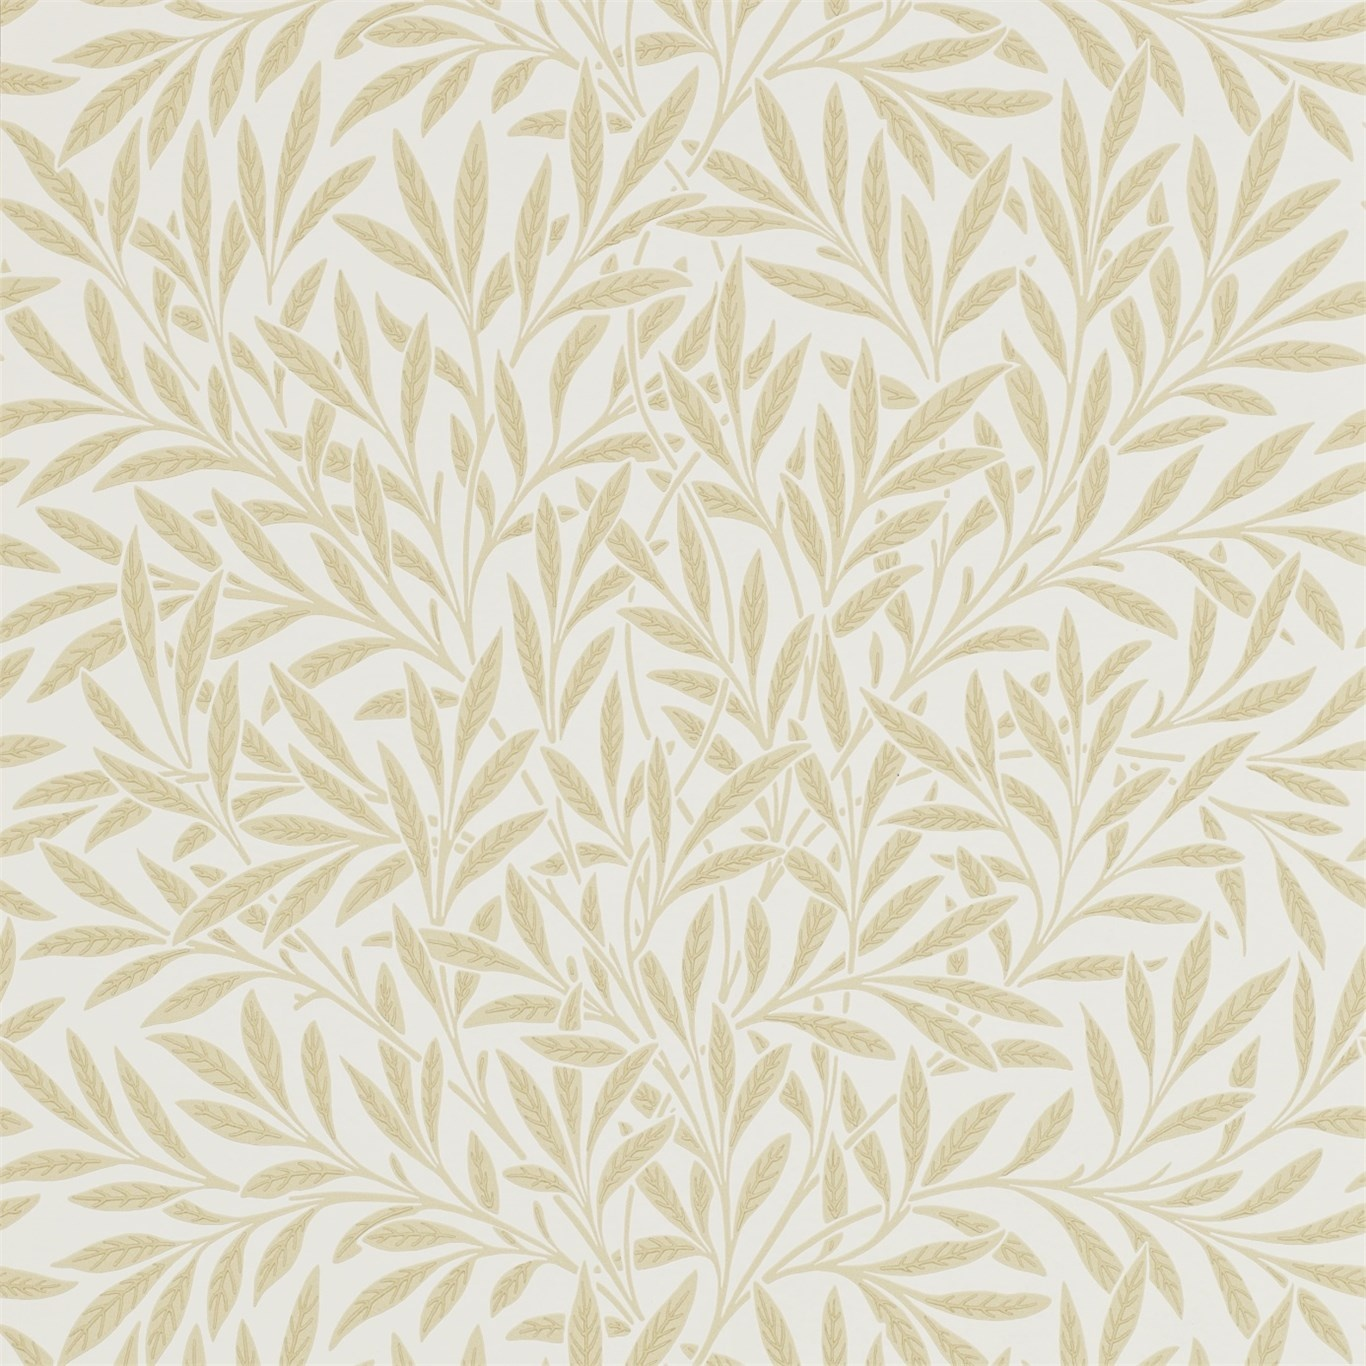 Image of Morris & Co Willow Buff Wallpaper 210385